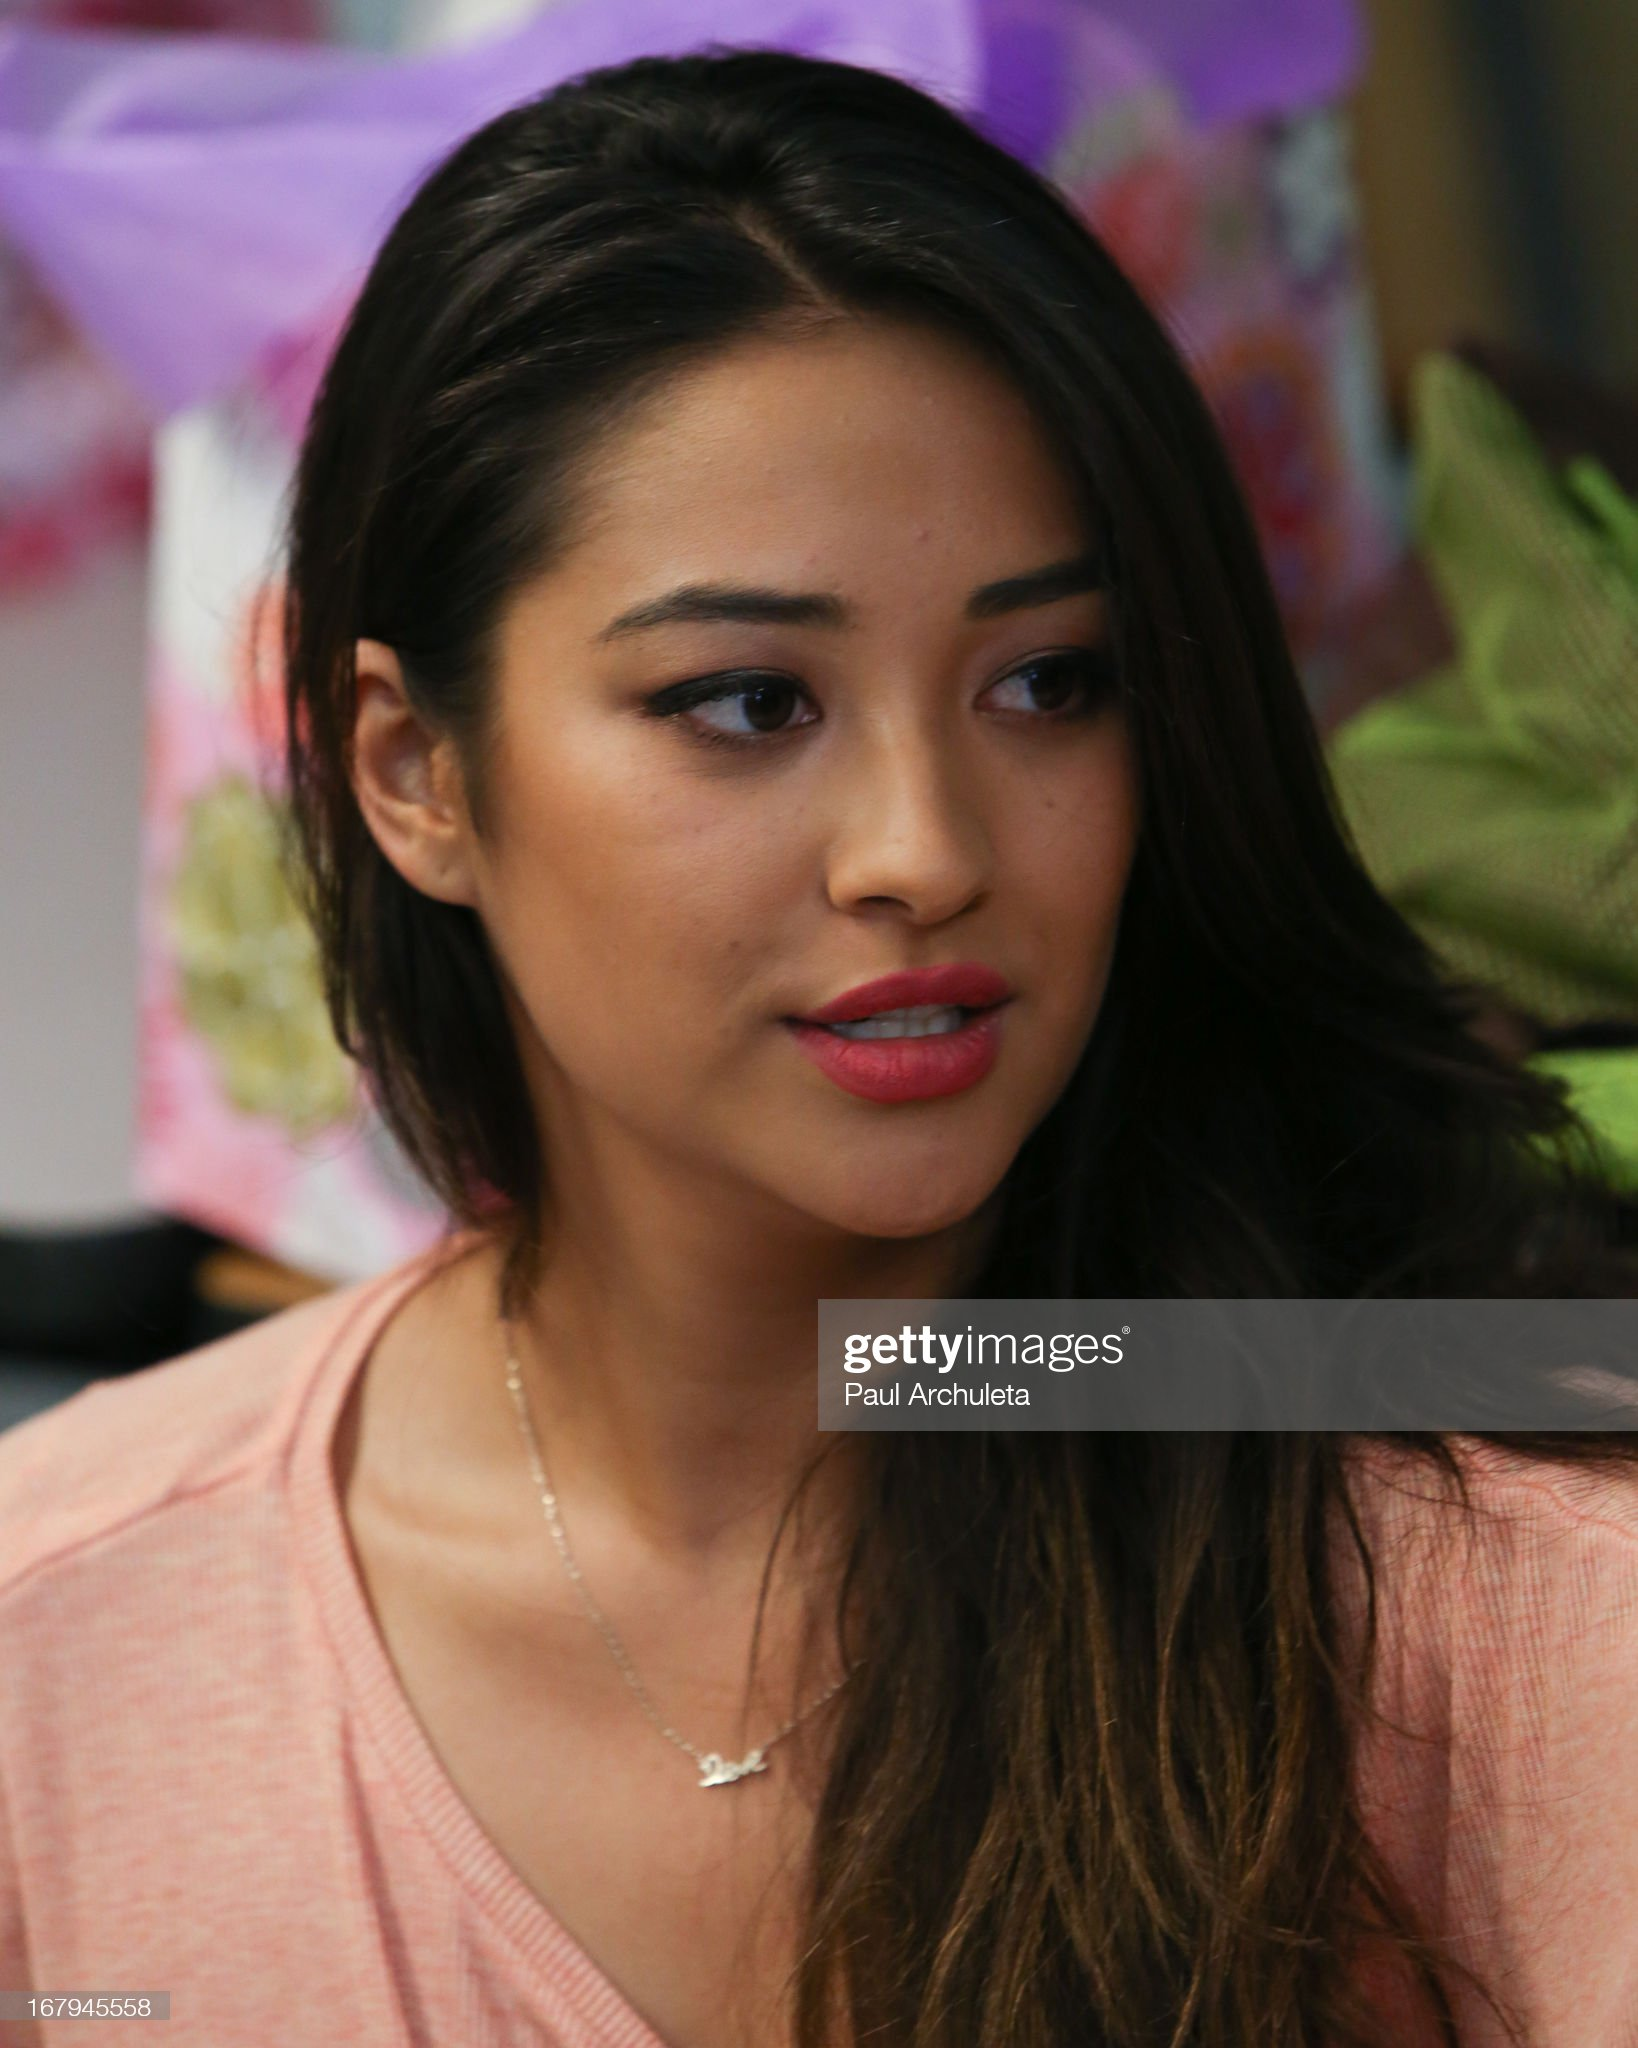 DEBATE sobre guapura de famosos y famosas - Página 3 Actress-shay-mitchell-joins-girl-power-day-to-help-teenage-girls-step-picture-id167945558?s=2048x2048